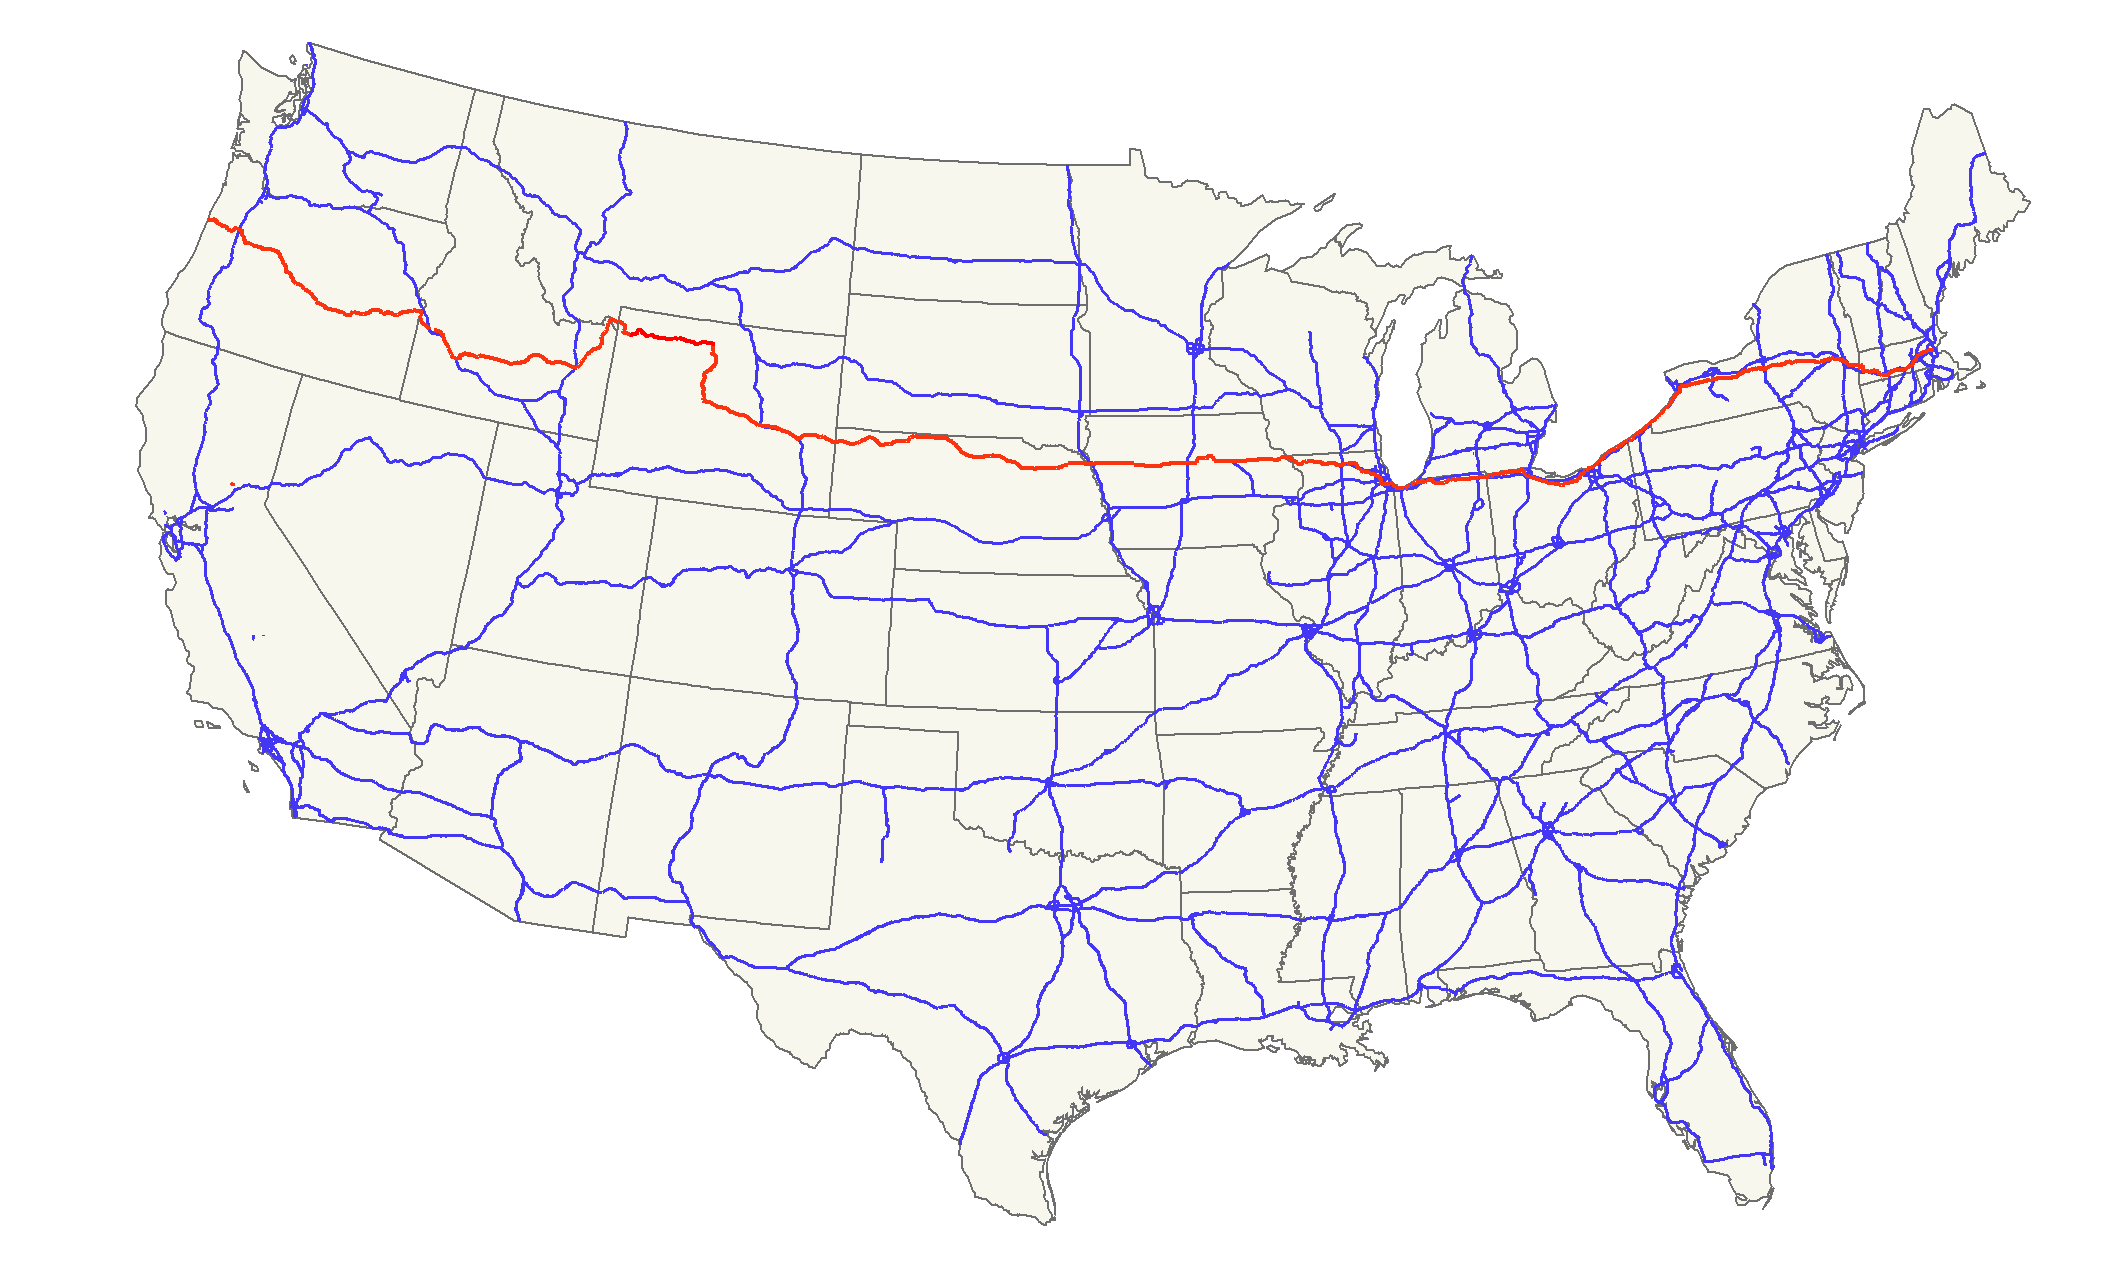 FileUS Mappng Wikimedia Commons - Us highway 30 map